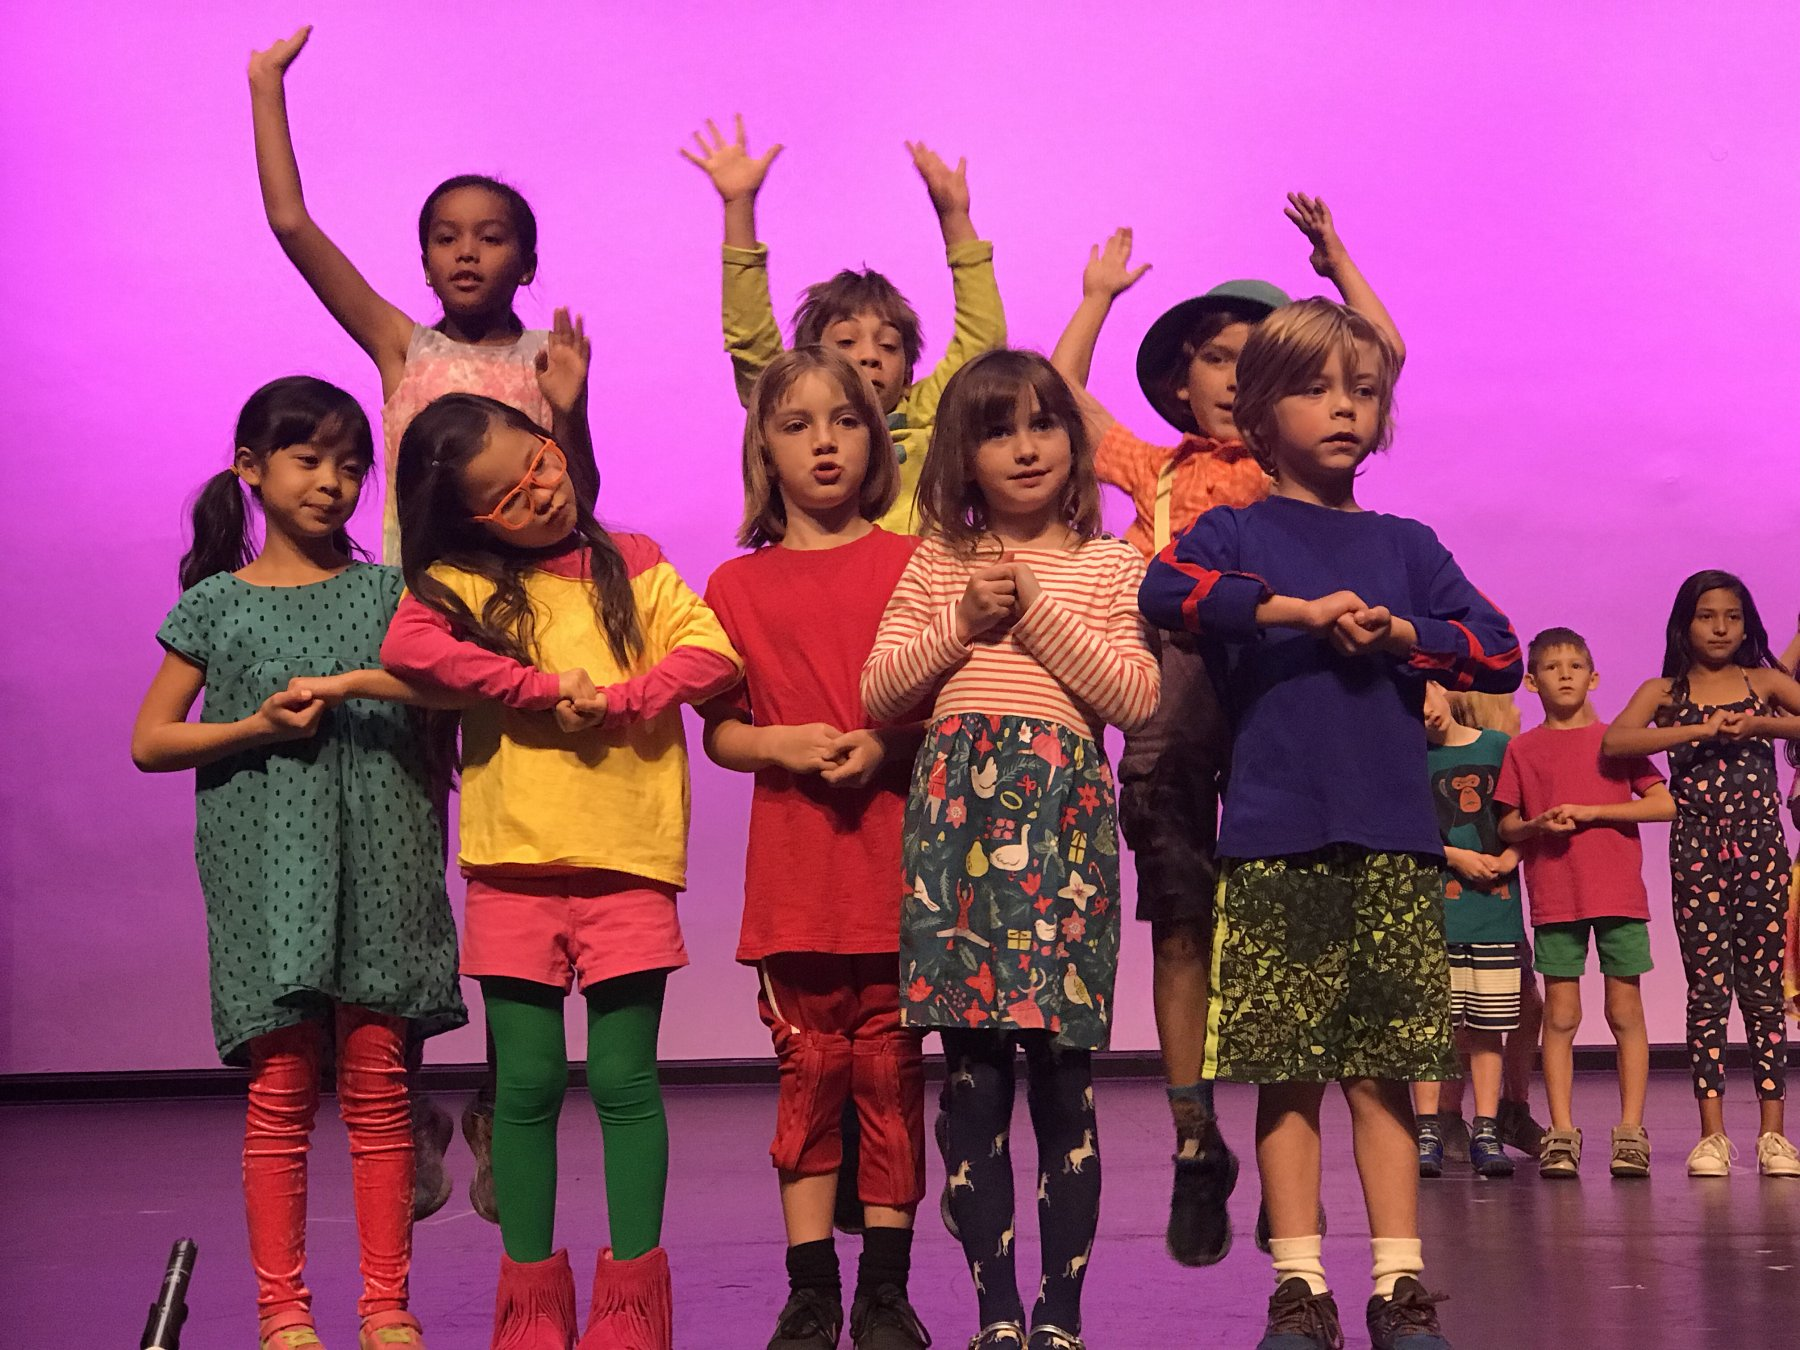 Stage performance ES kids in colorful costumes